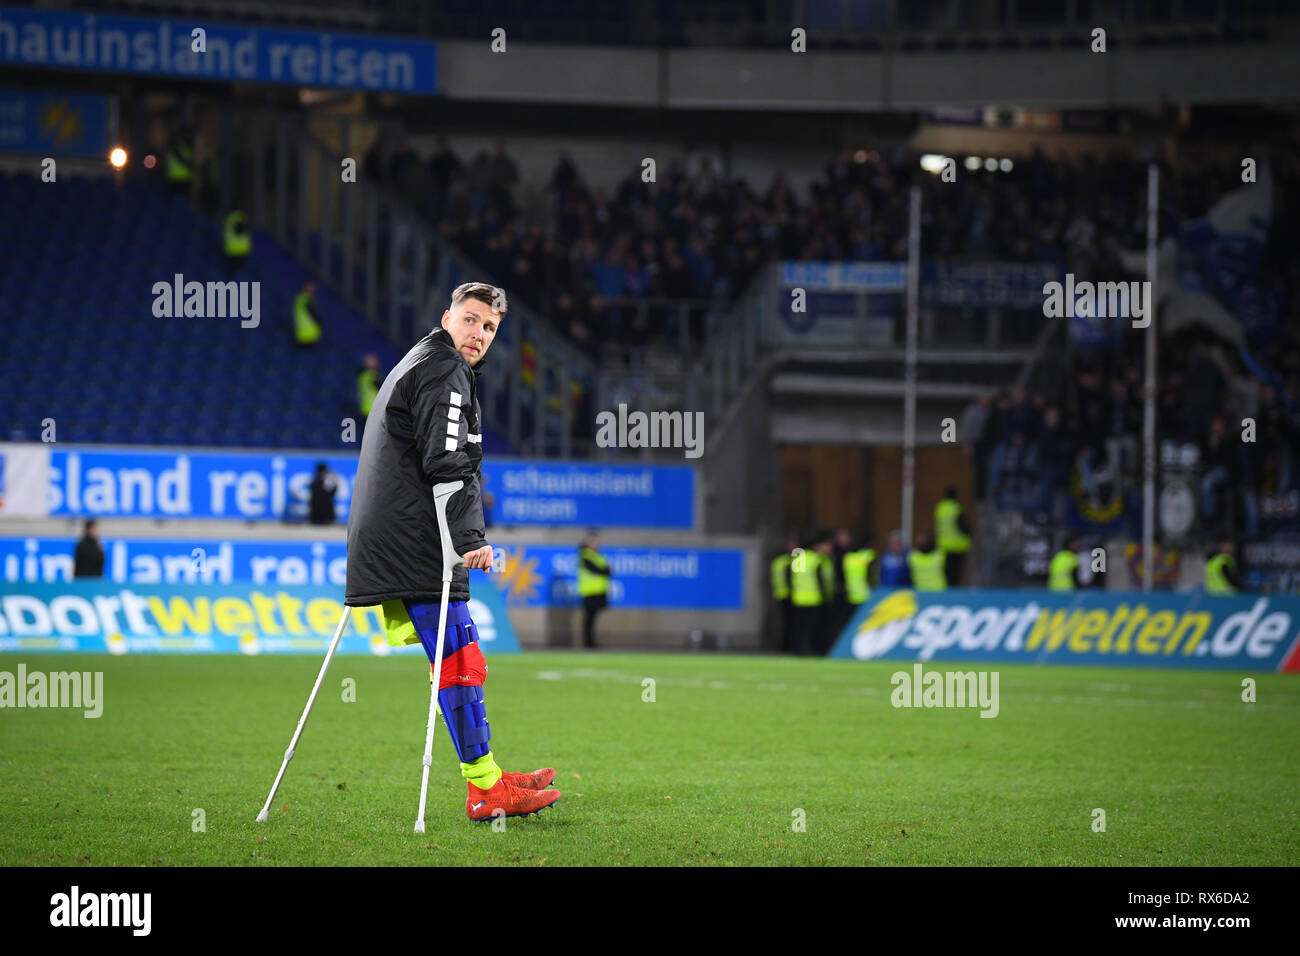 Duisburg, Deutschland. 08th Mar, 2019. Goalkeeper Rene Vollath (KFC Uerdingen 05) injured. GES/football/3rd league: Krefelder football club Uerdingen - Karlsruher SC, 08.03.2019 Football/Soccer: 3rd League: KFC Uerdingen vs Karlsruher SC, Duisburg, March 8, 2019 | usage worldwide Credit: dpa/Alamy Live News - Stock Image